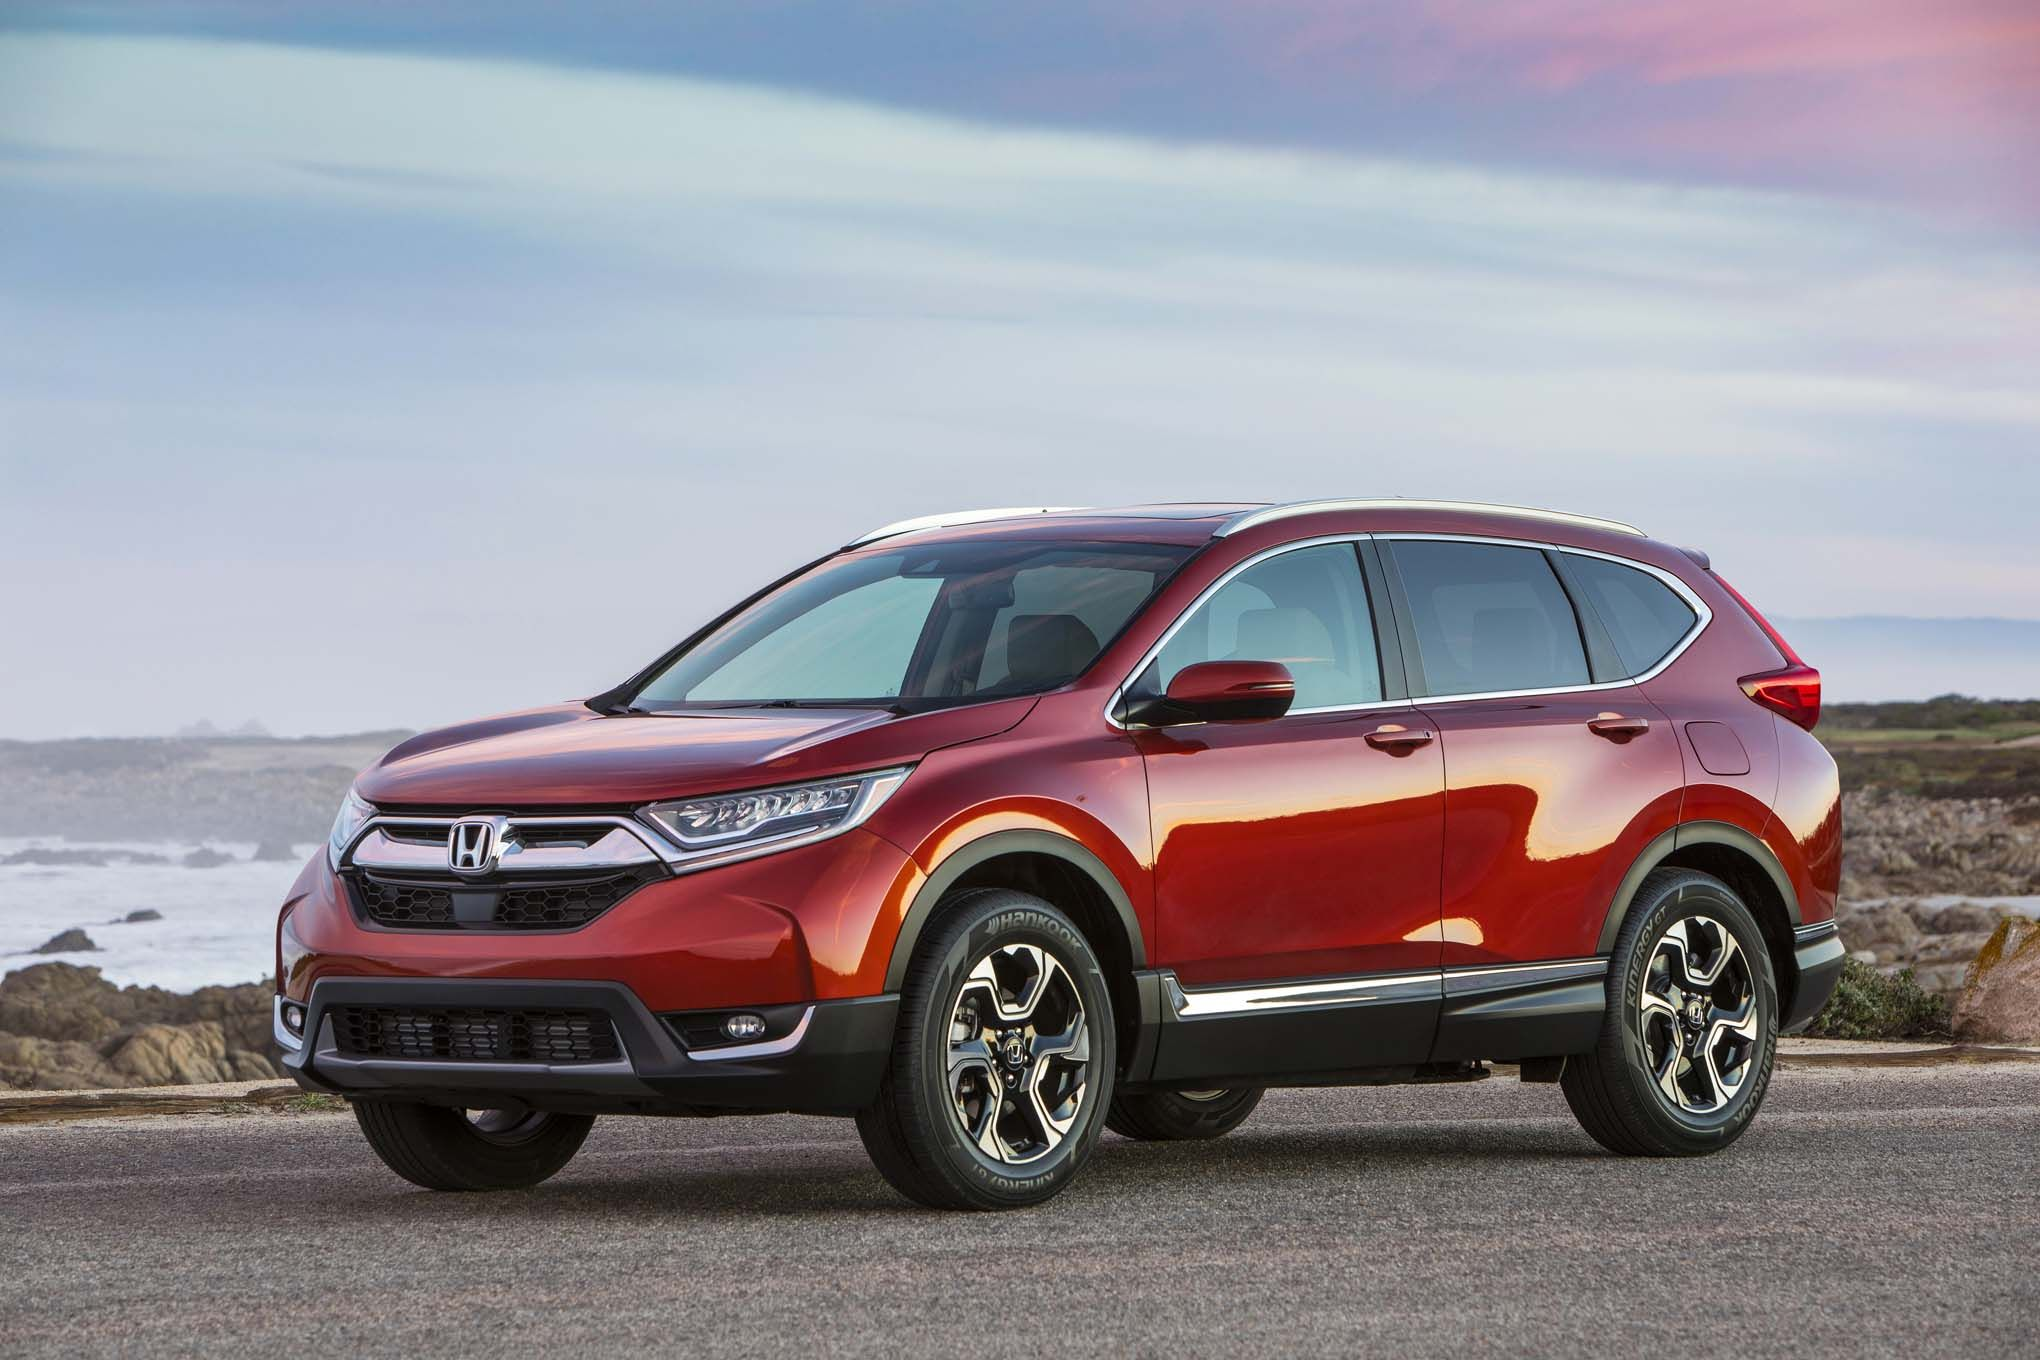 2016 Honda CRV Best new cars, Honda cr, Best small suv